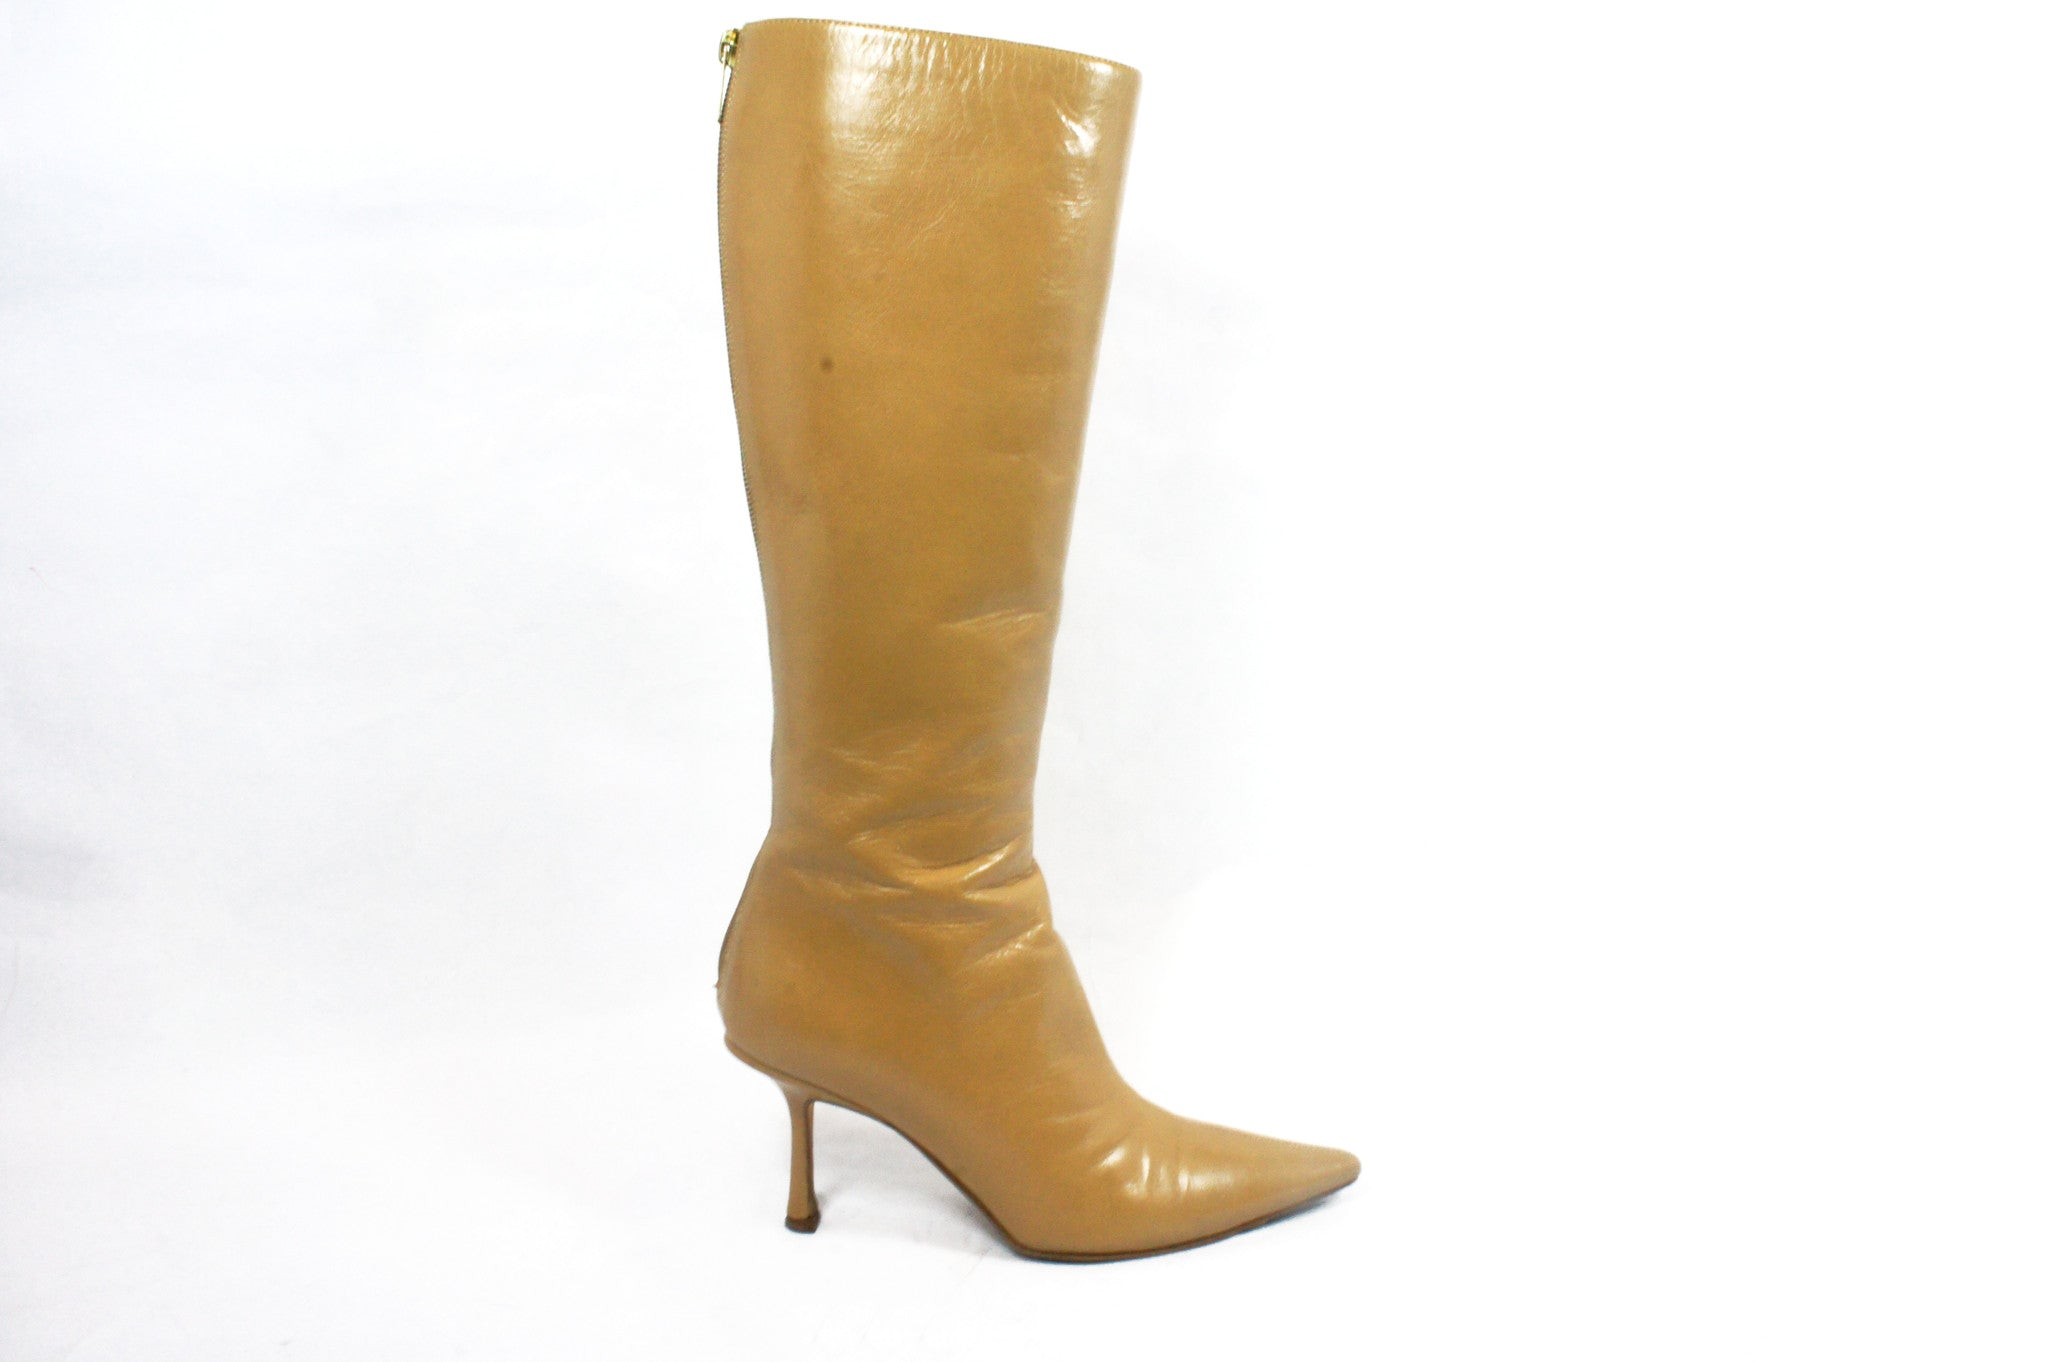 Jimmy Choo Beige Knee High Boots (Size 36.5) - Encore Consignment - 8